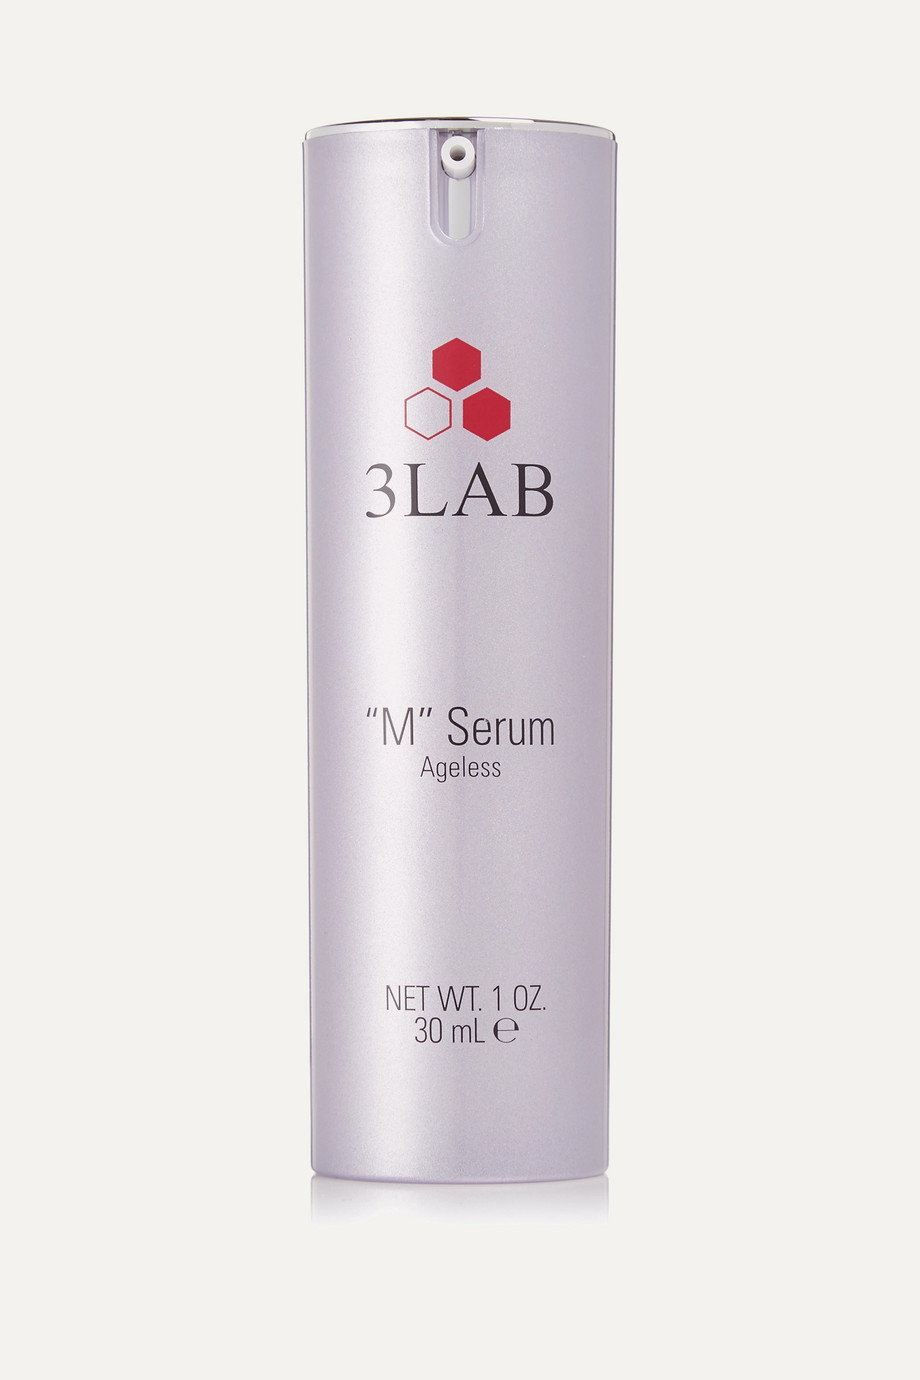 3LAB M Serum, 30 ml – Serum